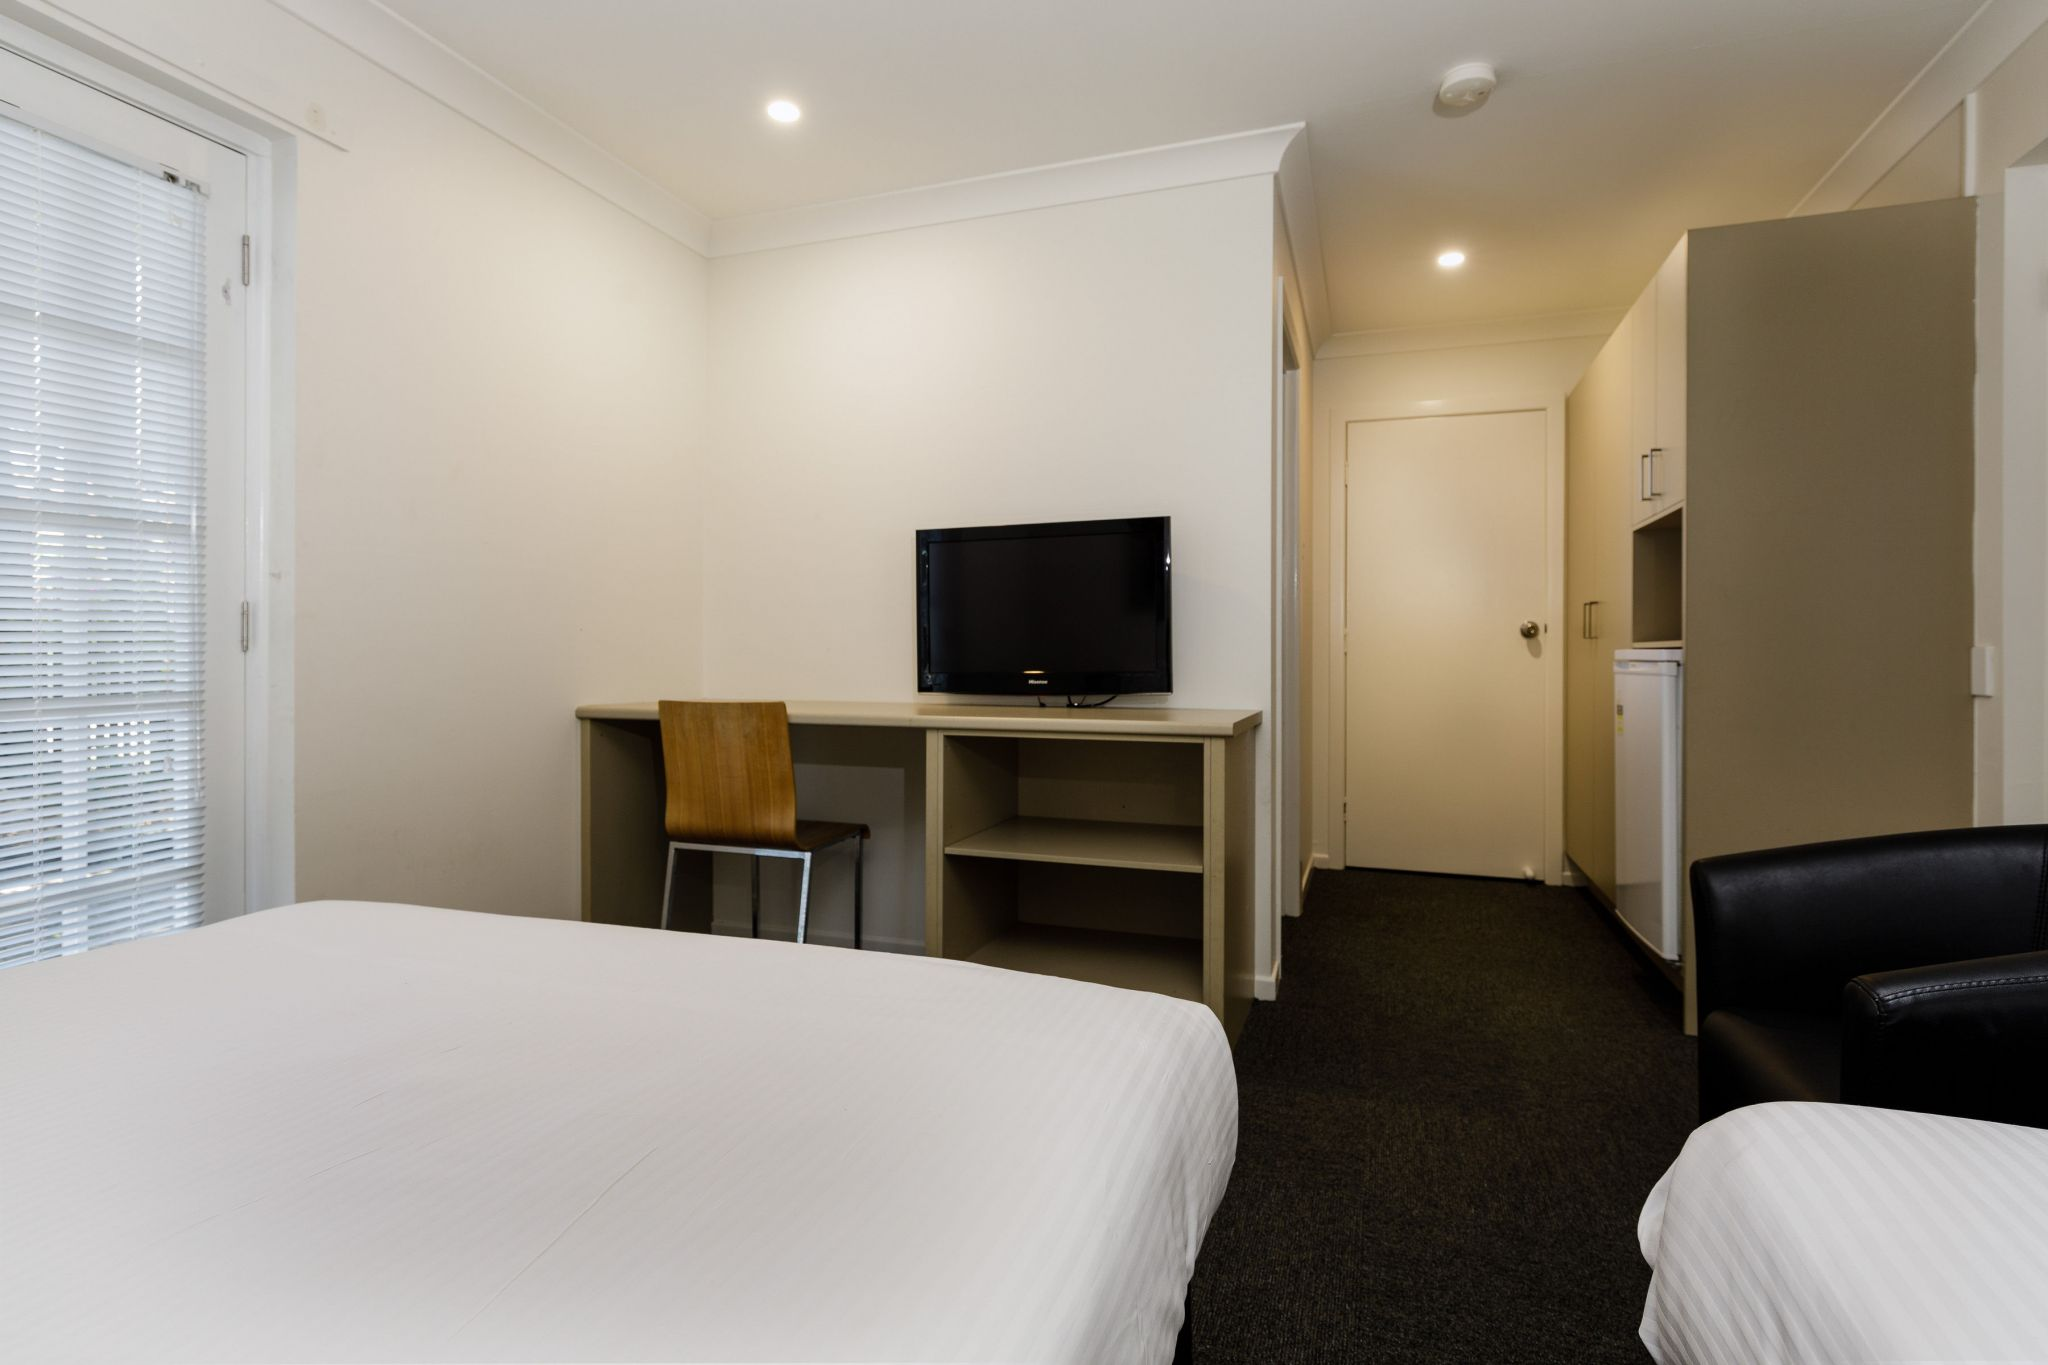 Waterloo Bay Hotel - Motel Accommodation - Byrneside Twin Motel Room 2